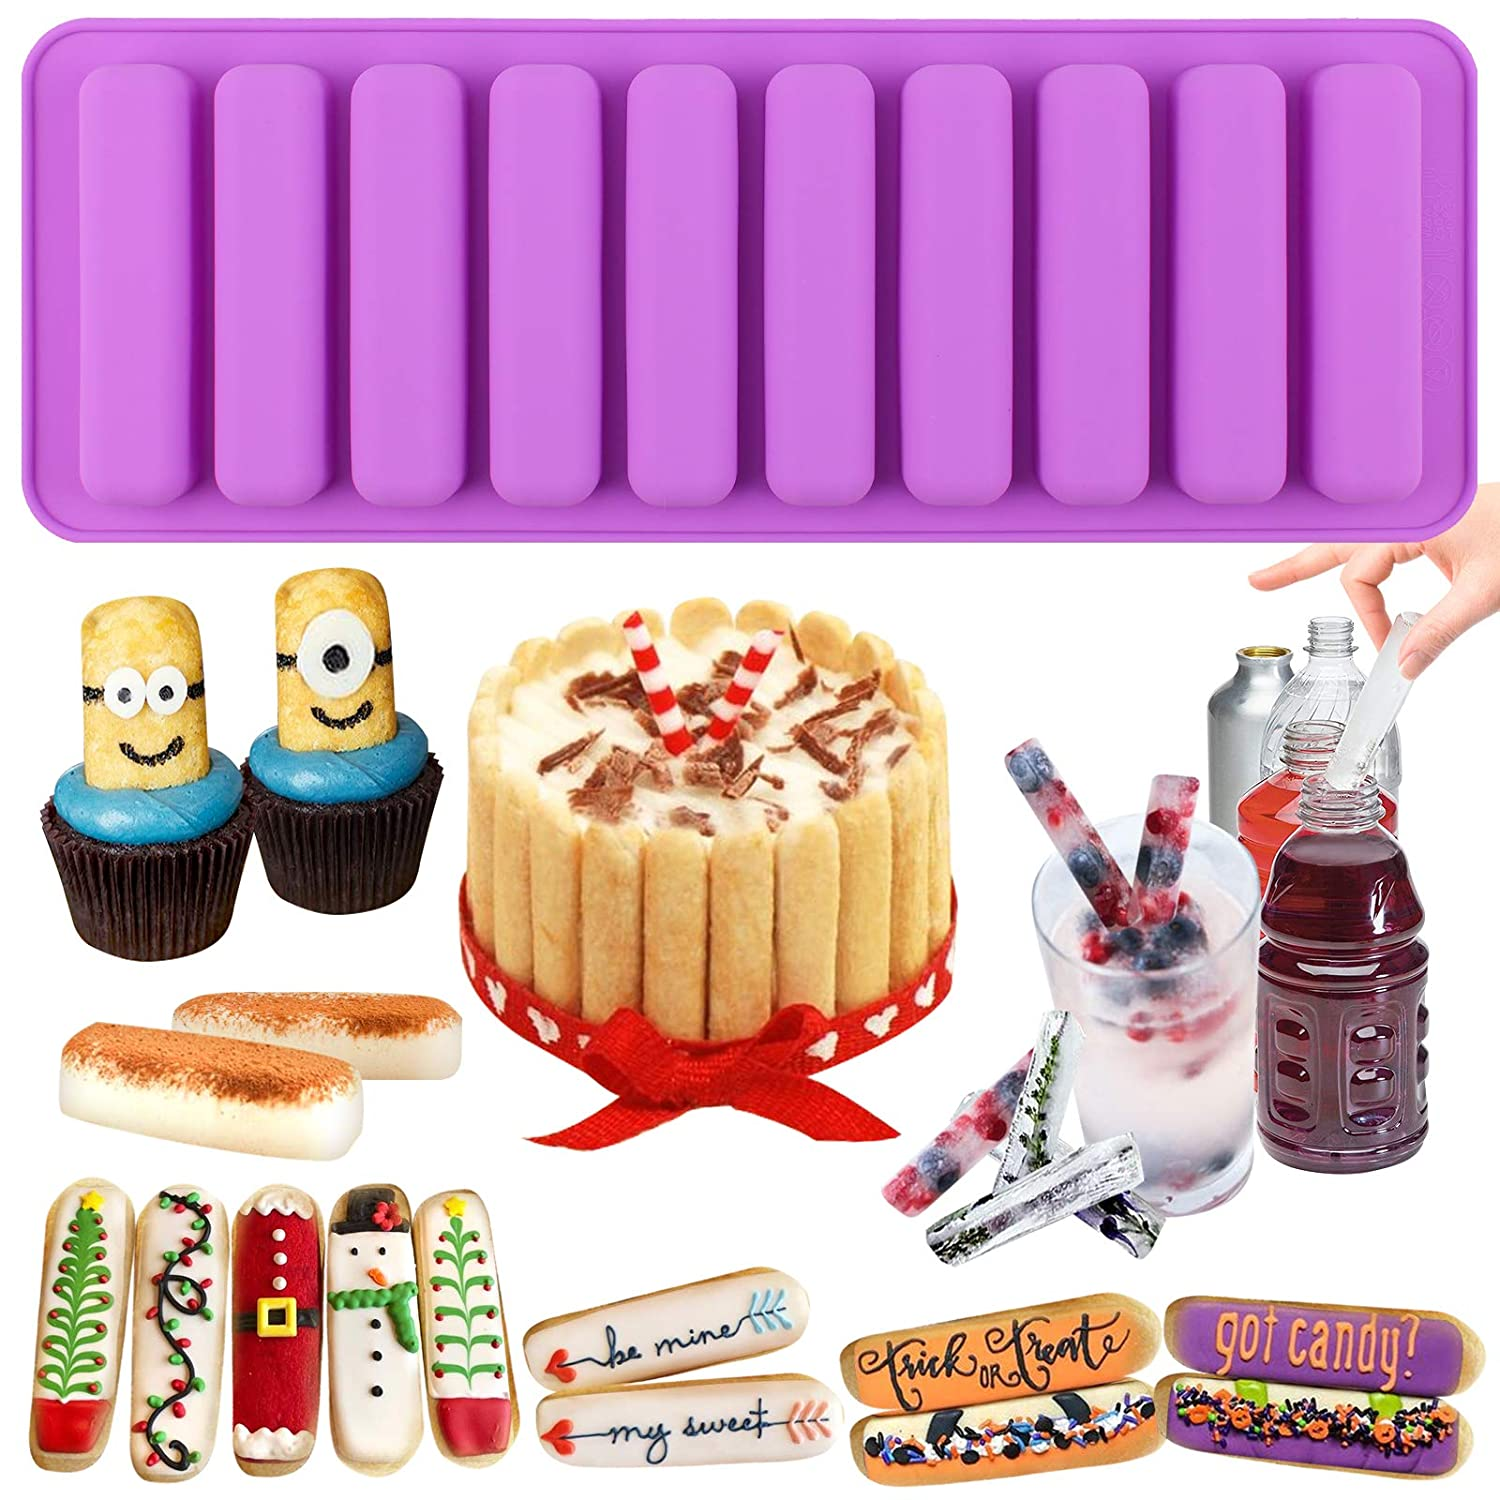 Funshowcase Rectangular Oblong Chocolate Cracker Bar Stick Block Ice Cube Jelly Tray Cylinder Silicone Candy Mold